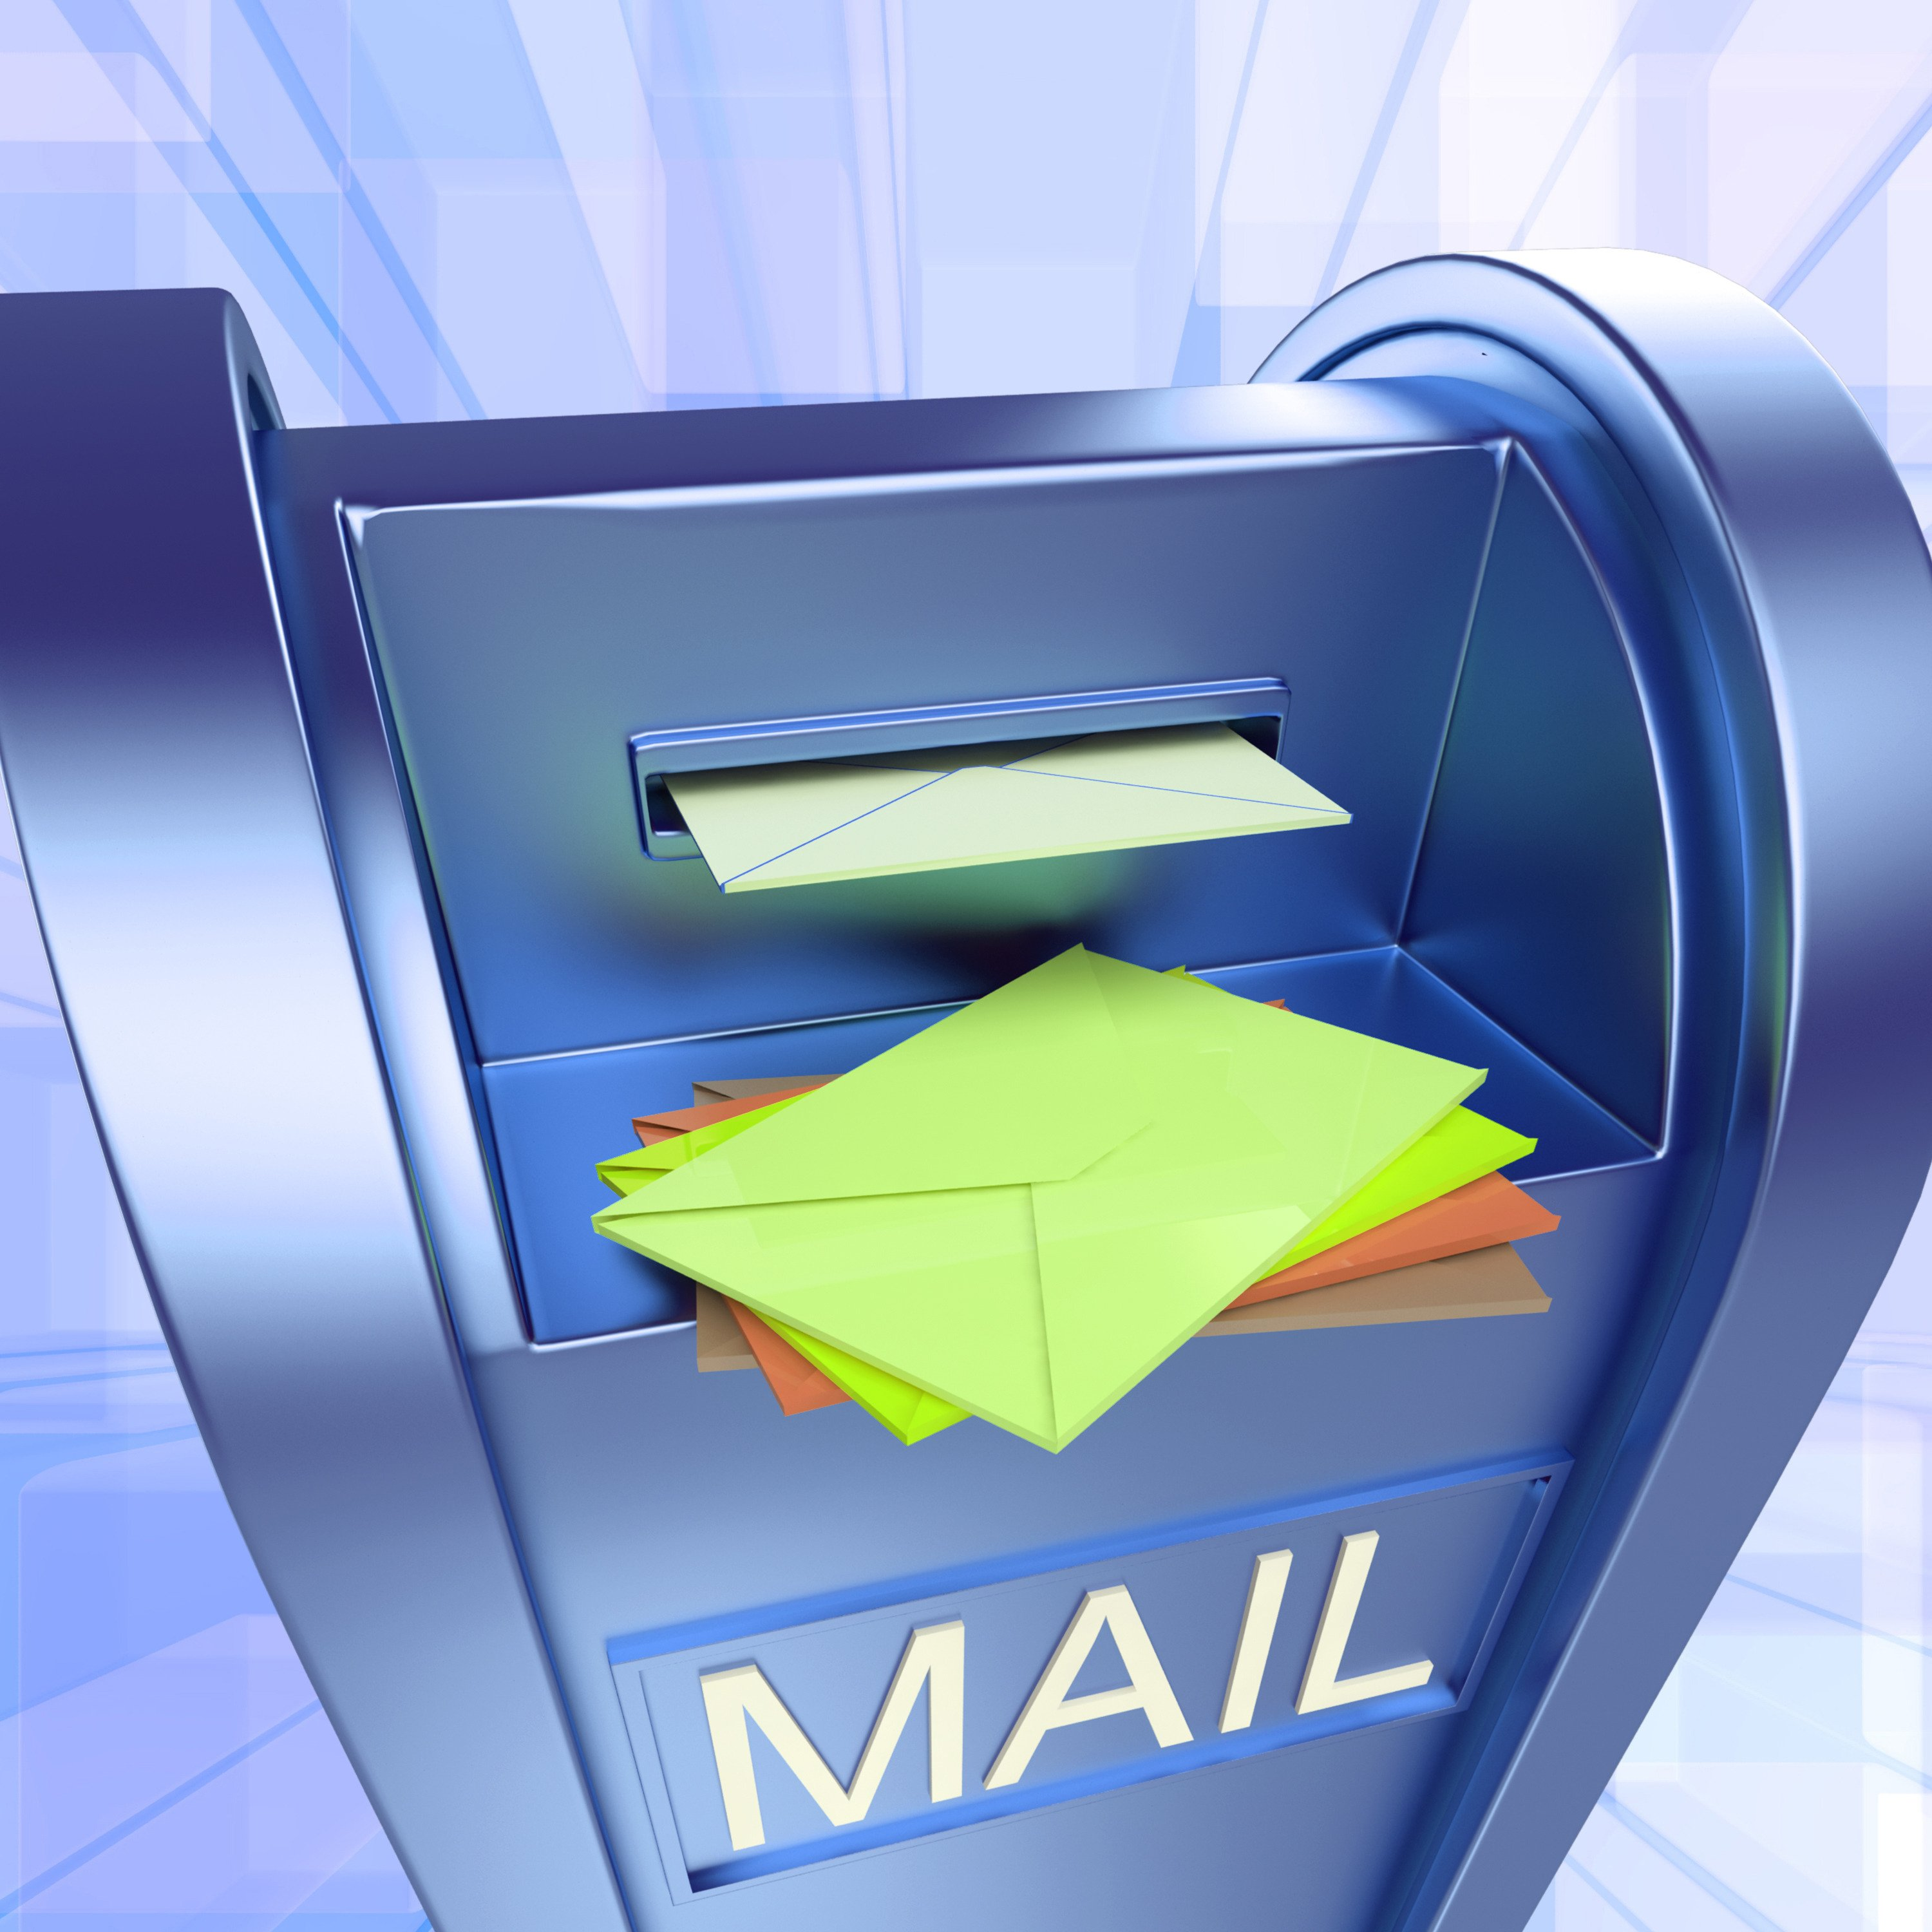 Mail On Mailbox Showing Sending Letters And Communication